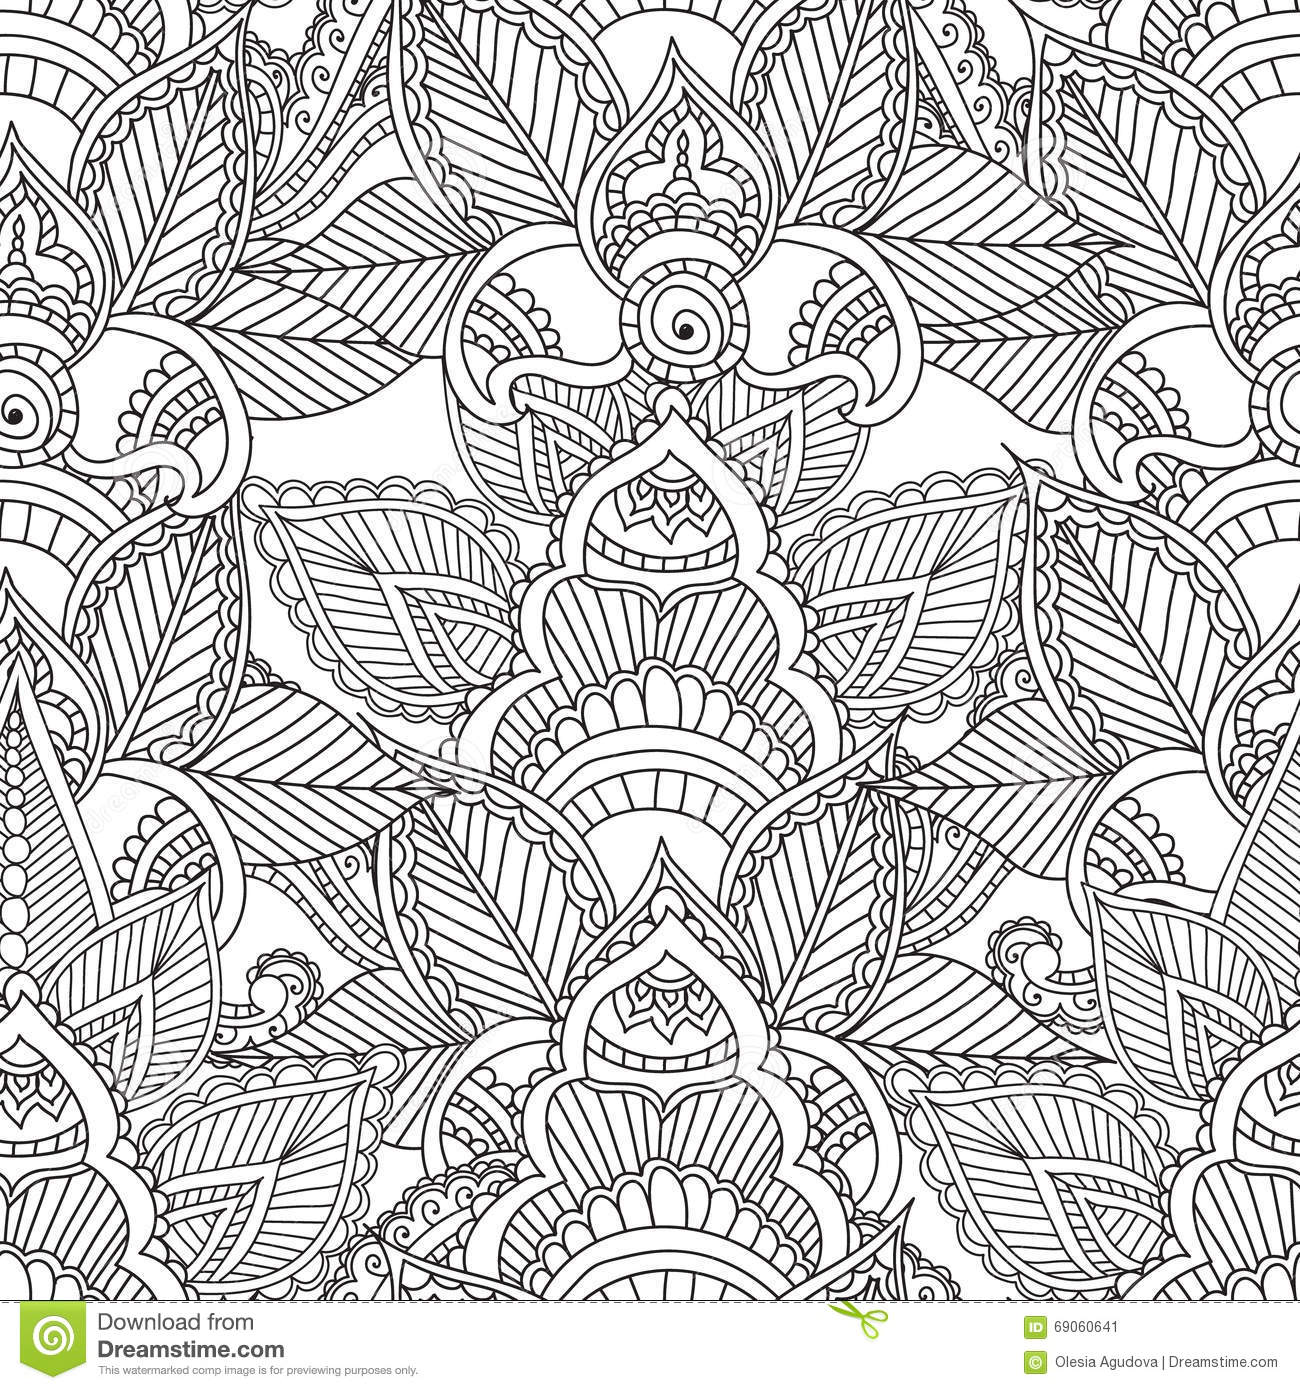 Royalty Free Vector Download Coloring Pages